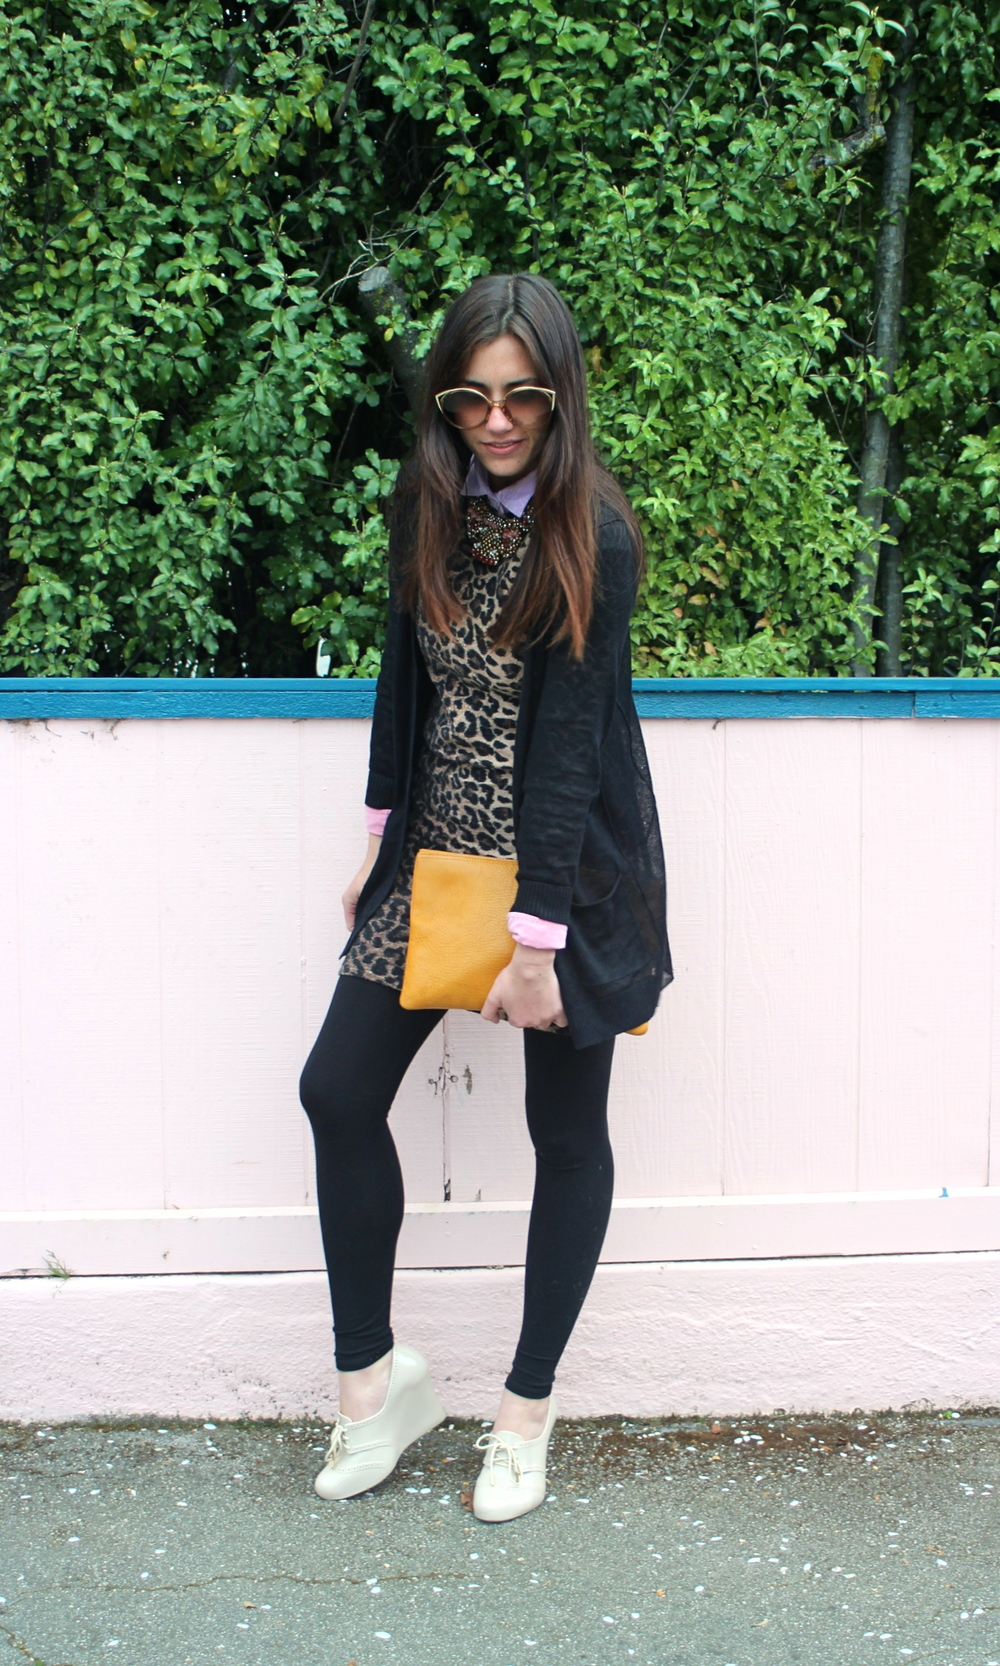 Linen Cardigan: KEW, Jigsaw London; Leo Dress: Sway; Color Blocked Blouse: J.Crew; Leggings: Jigsaw London; Wedges: Melissa for Herchcovitch Alexandre; Clutch: Madewell; Necklace: Anthropology; Sunnies: Dior, vintage